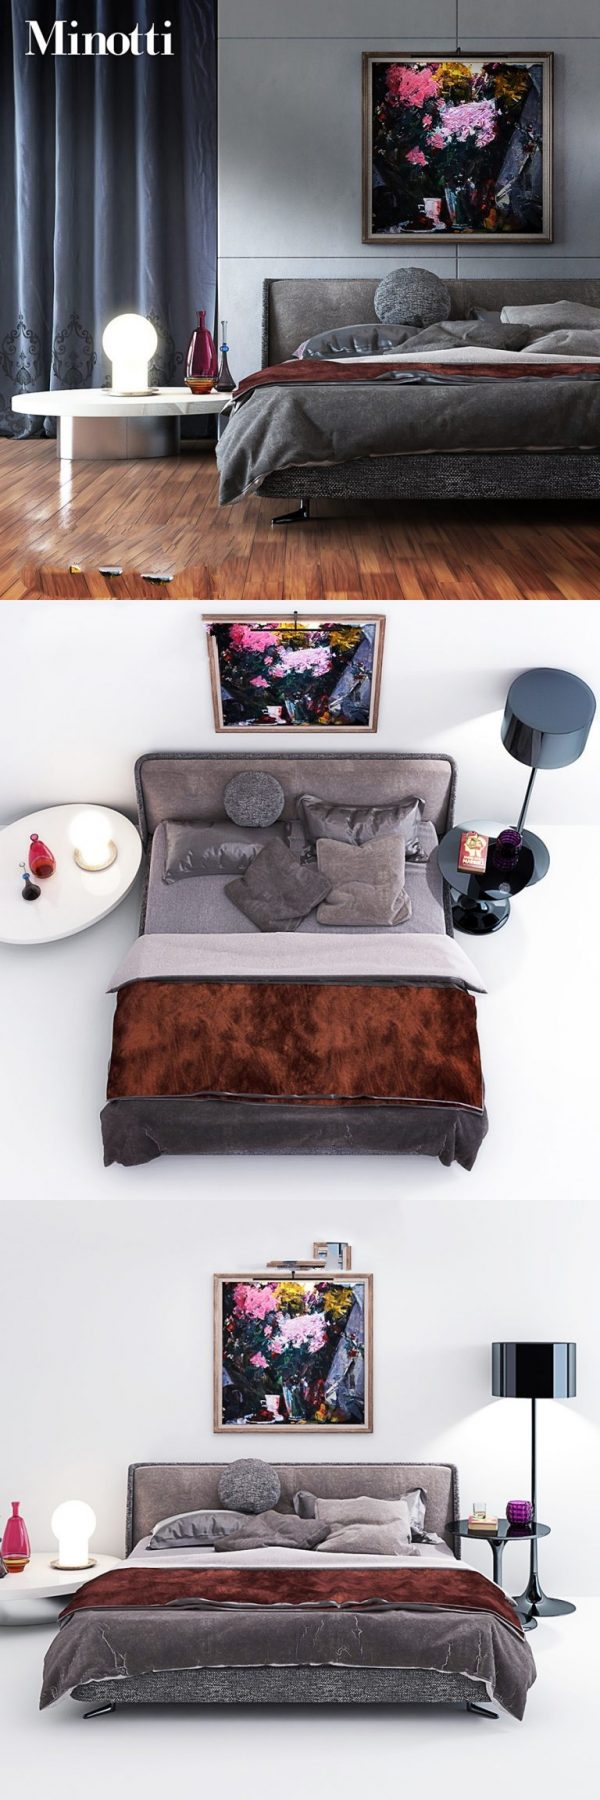 3D Minotti Spencer Bed Model 173 Free Download 2 768x2304 1